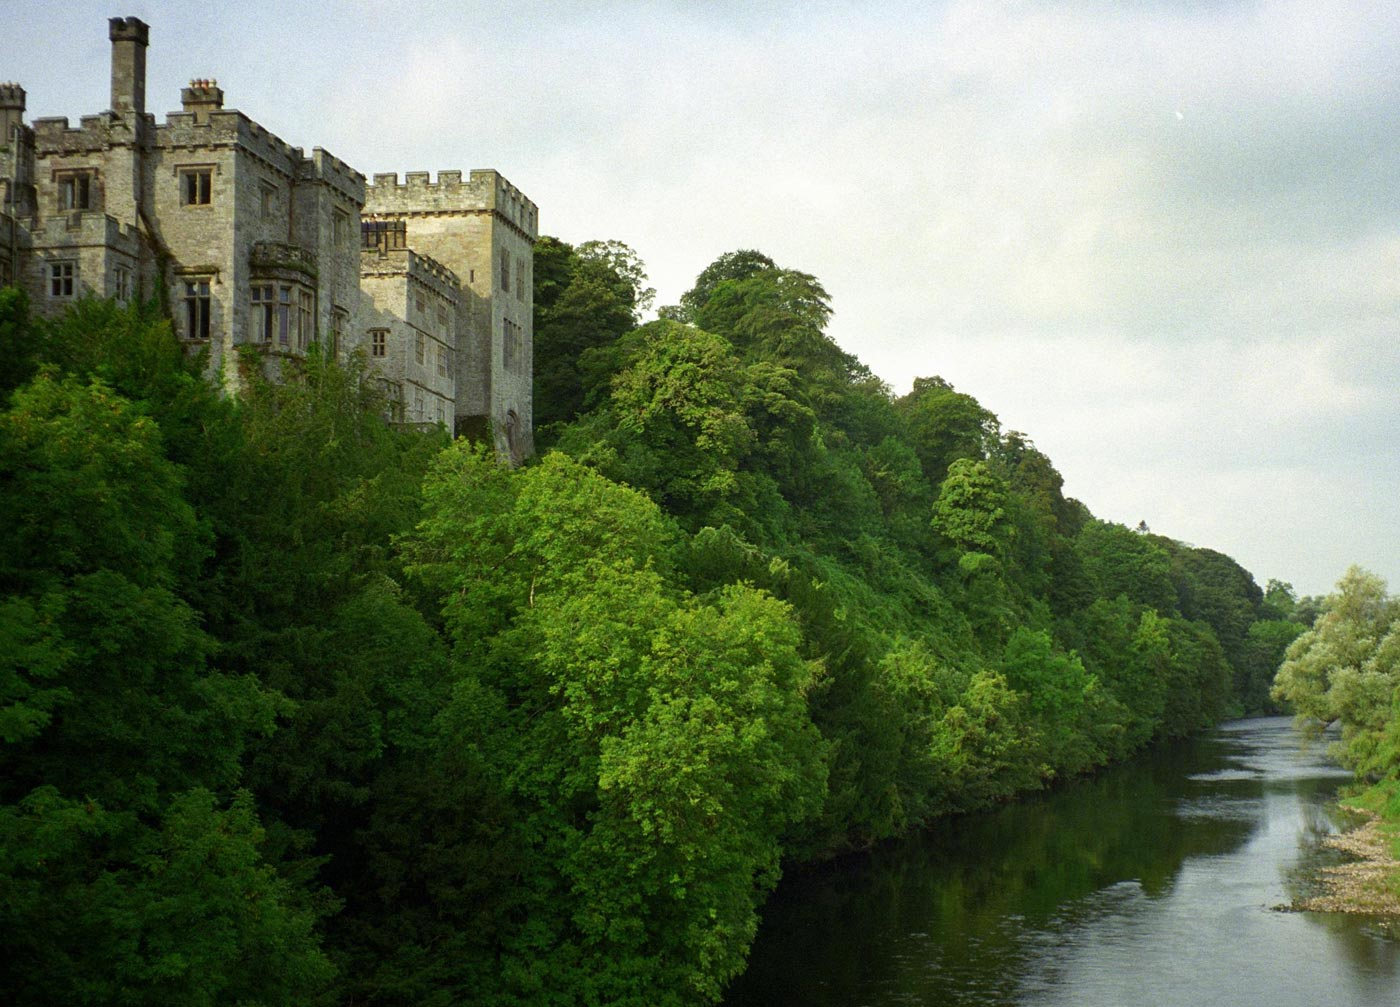 a large stoned castle is surrounded by oversized lush trees and a river